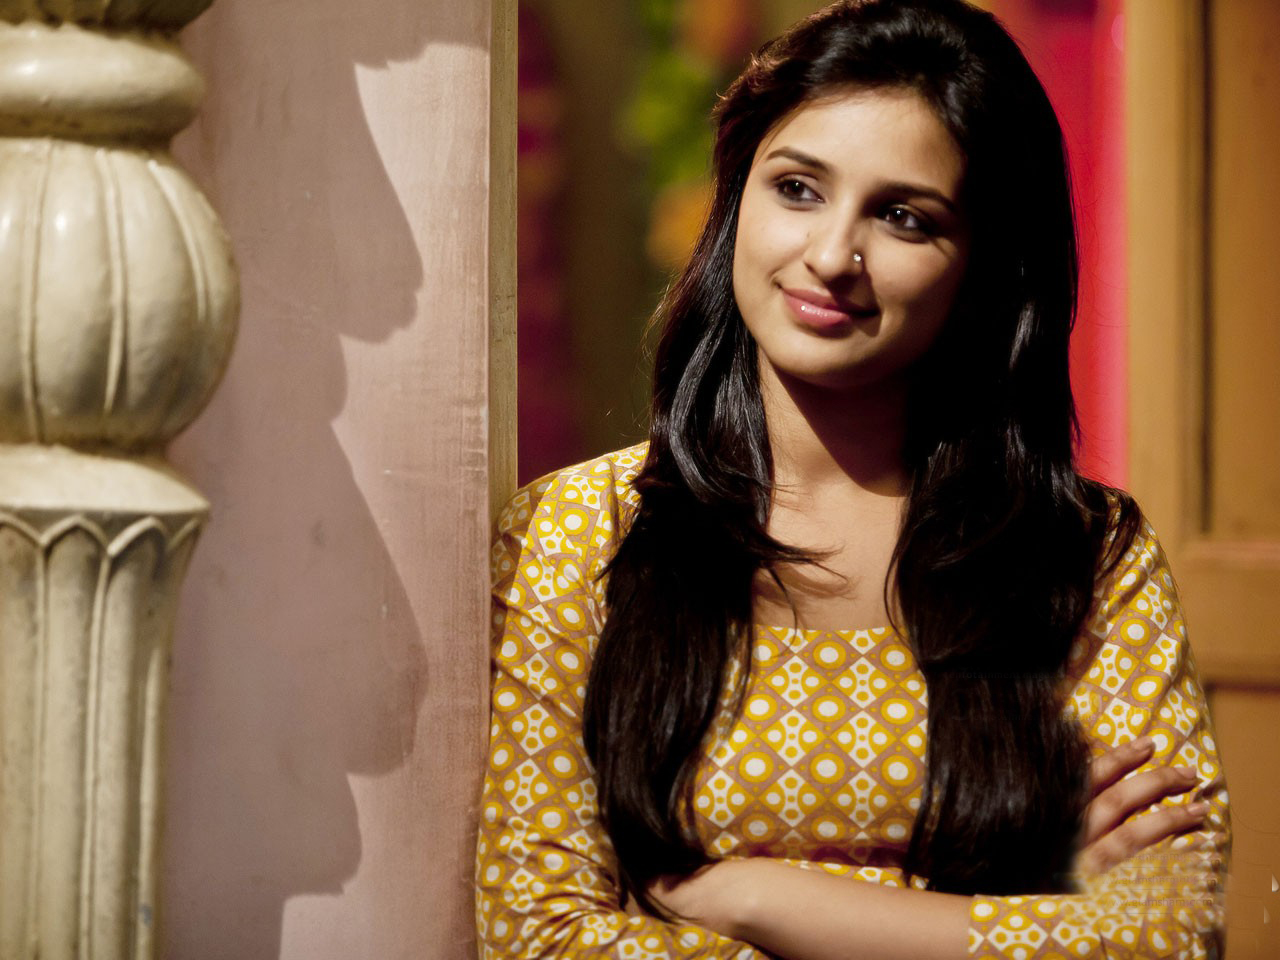 http://4.bp.blogspot.com/-OPhQTOBOpww/UXp5PF90CuI/AAAAAAAAGds/ITwXkUU6OKU/s1600/parineeti+chopra+hd+wallpapers+++latest+new+collection+(27).jpg